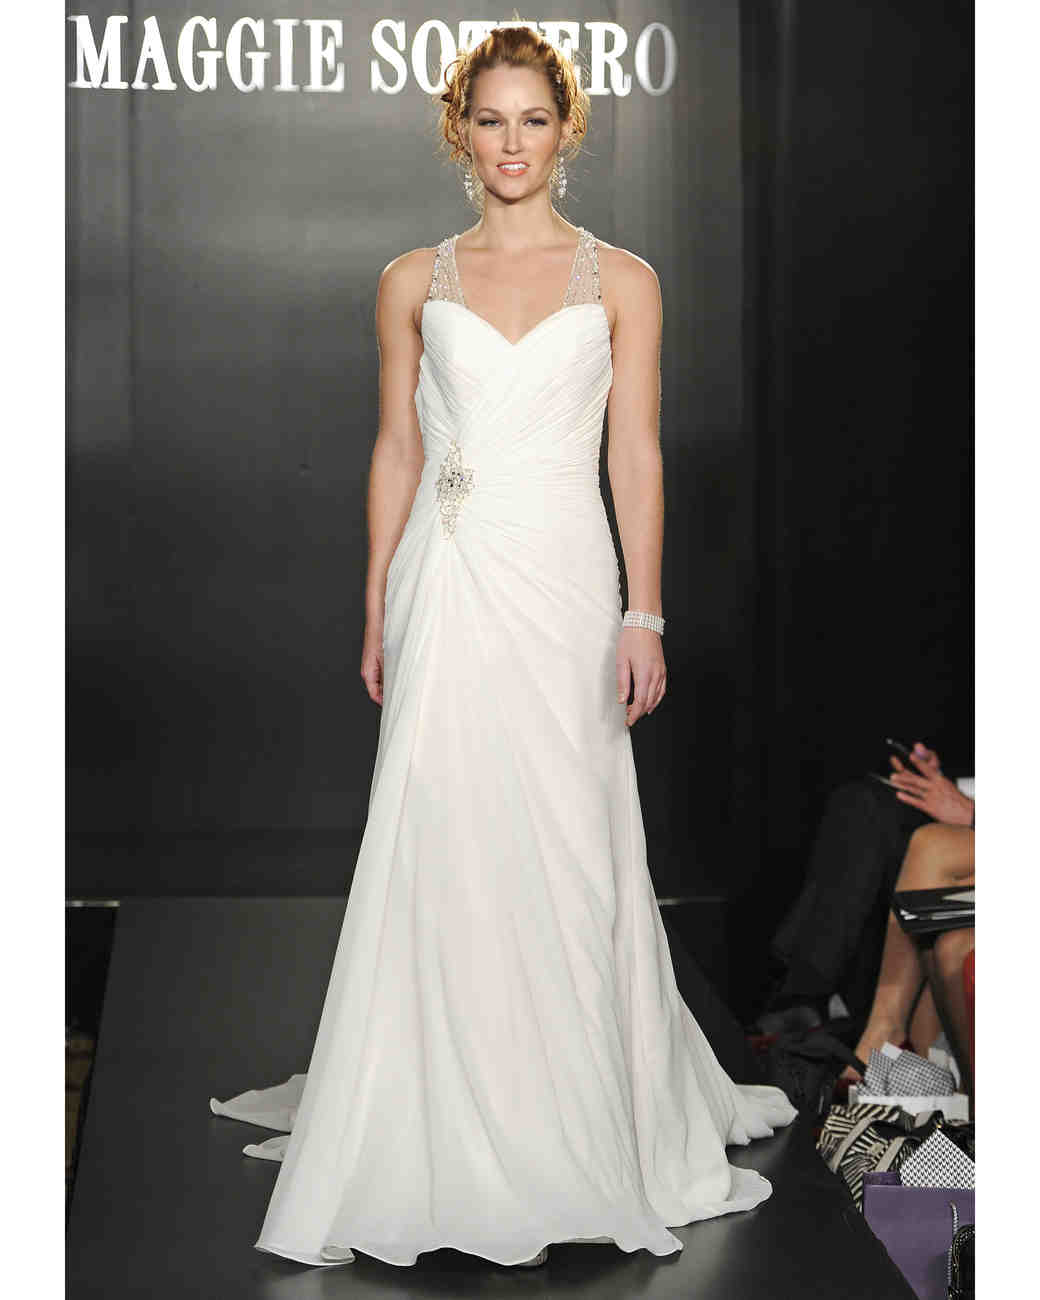 maggie-sottero-spring2013-wd108745-003.jpg